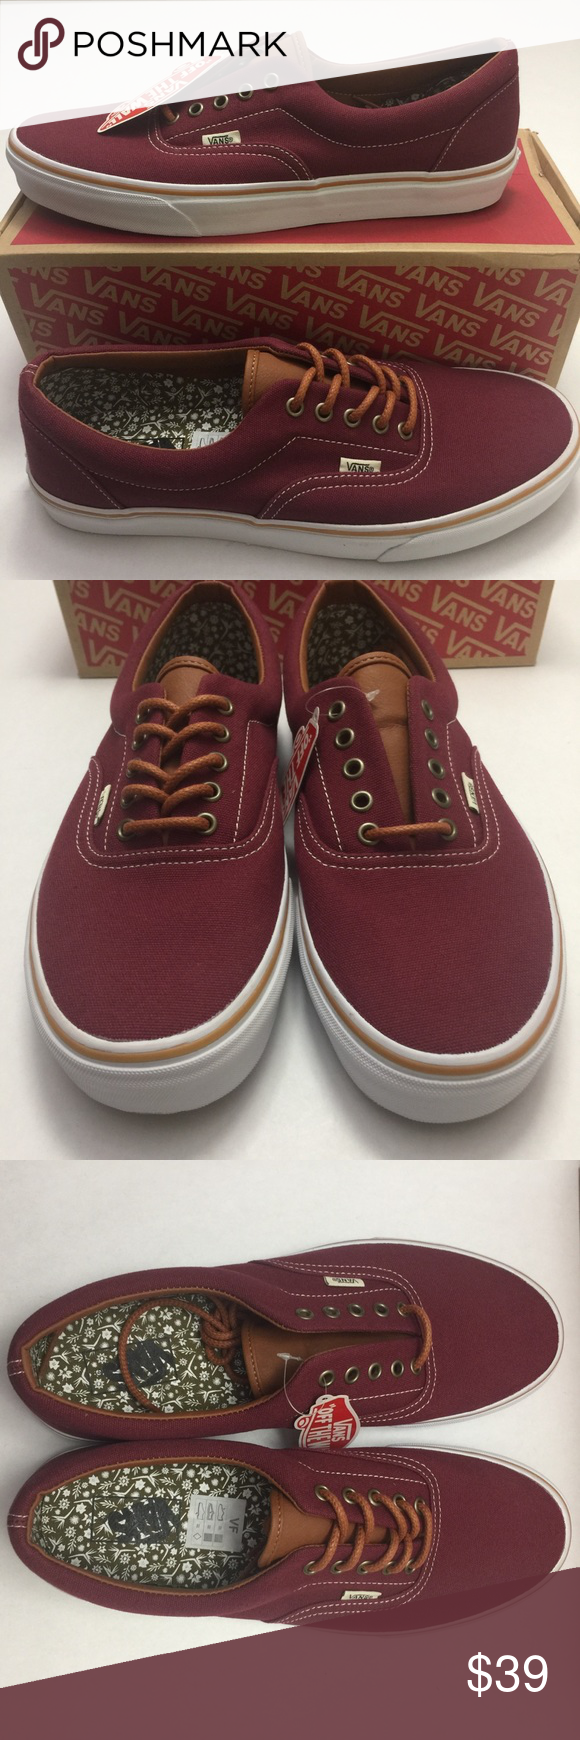 faf254596c Vans Era Shoes Men s Size 12 Work Floral - Cordovan Men s size 12 New with  box. Box may have some damage. Check my closet for many more Vans styles.